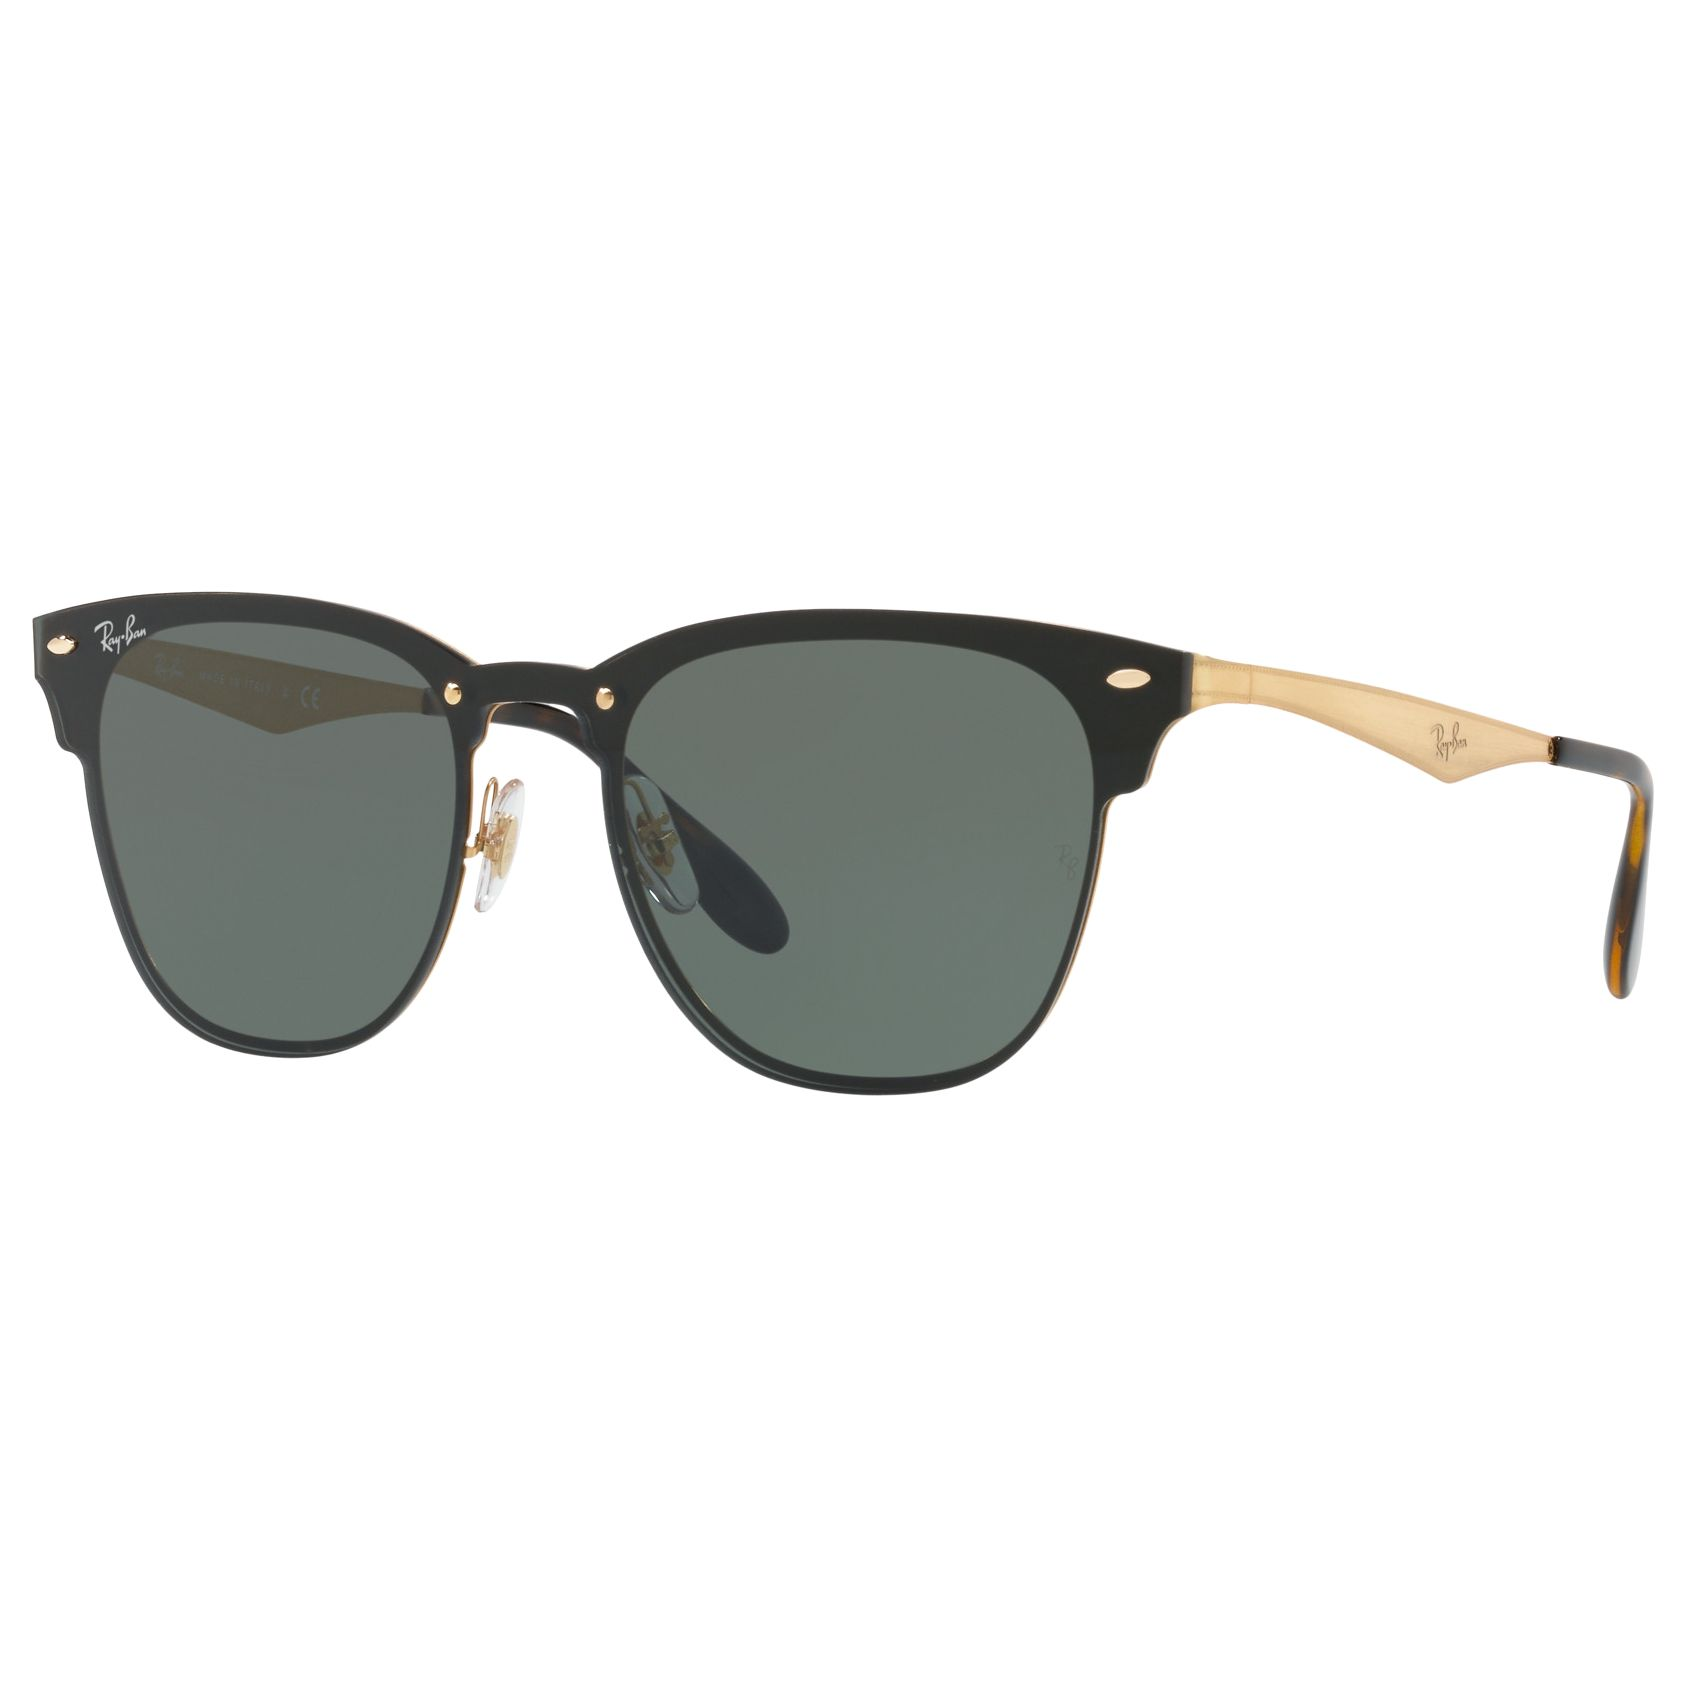 0813081b0904 Ray-Ban RB3576N Blaze Clubmaster Square Sunglasses at John Lewis   Partners